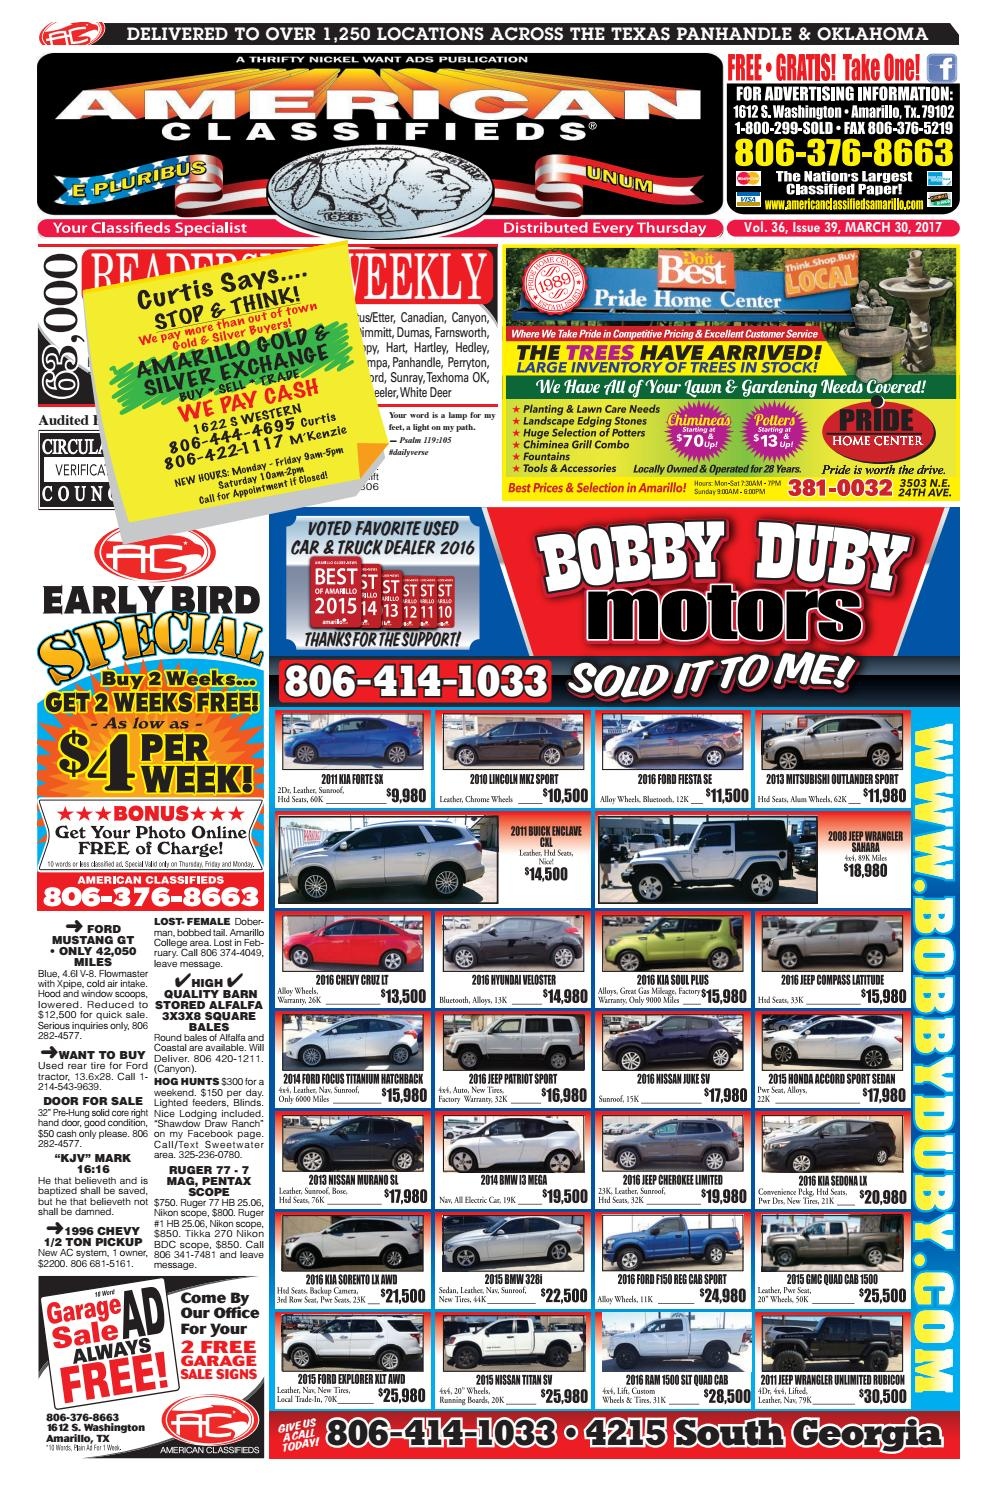 American Classifieds | Amarillo, TX | March 30, 2017 by